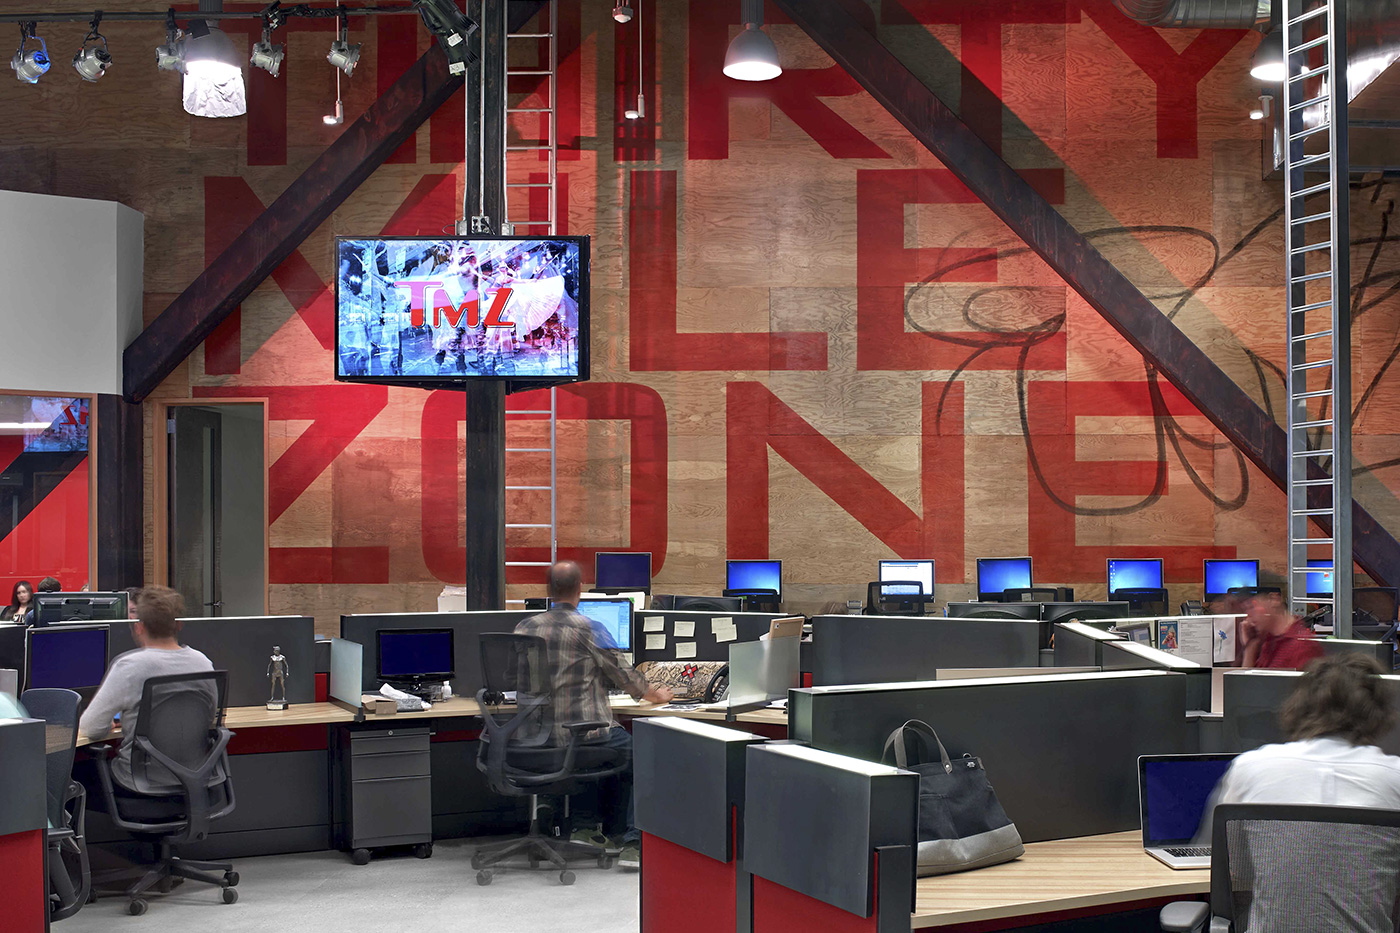 Tmz rapt studio for 111 maiden lane salon san francisco